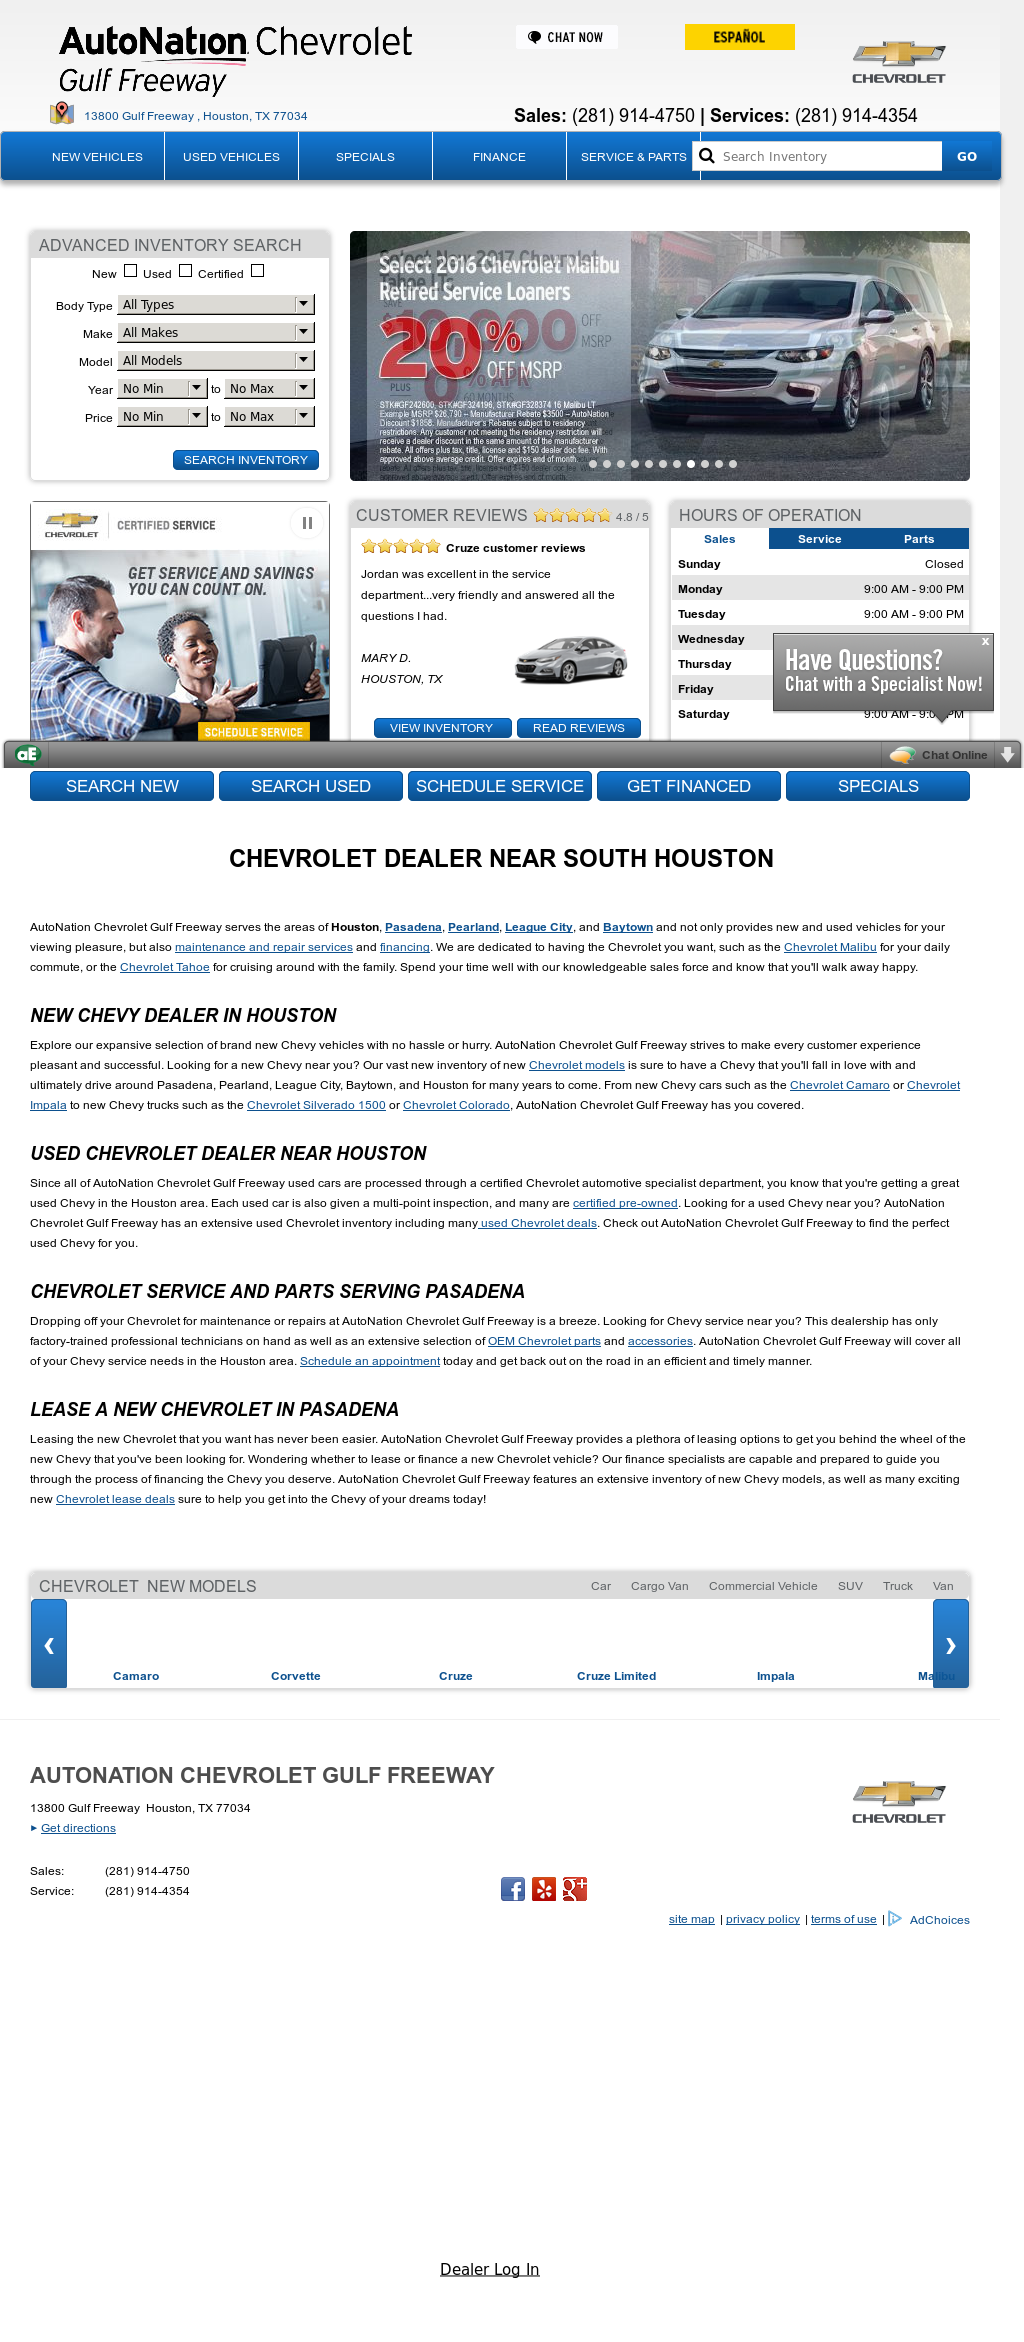 Autonation Chevrolet Gulf Freeway Website History